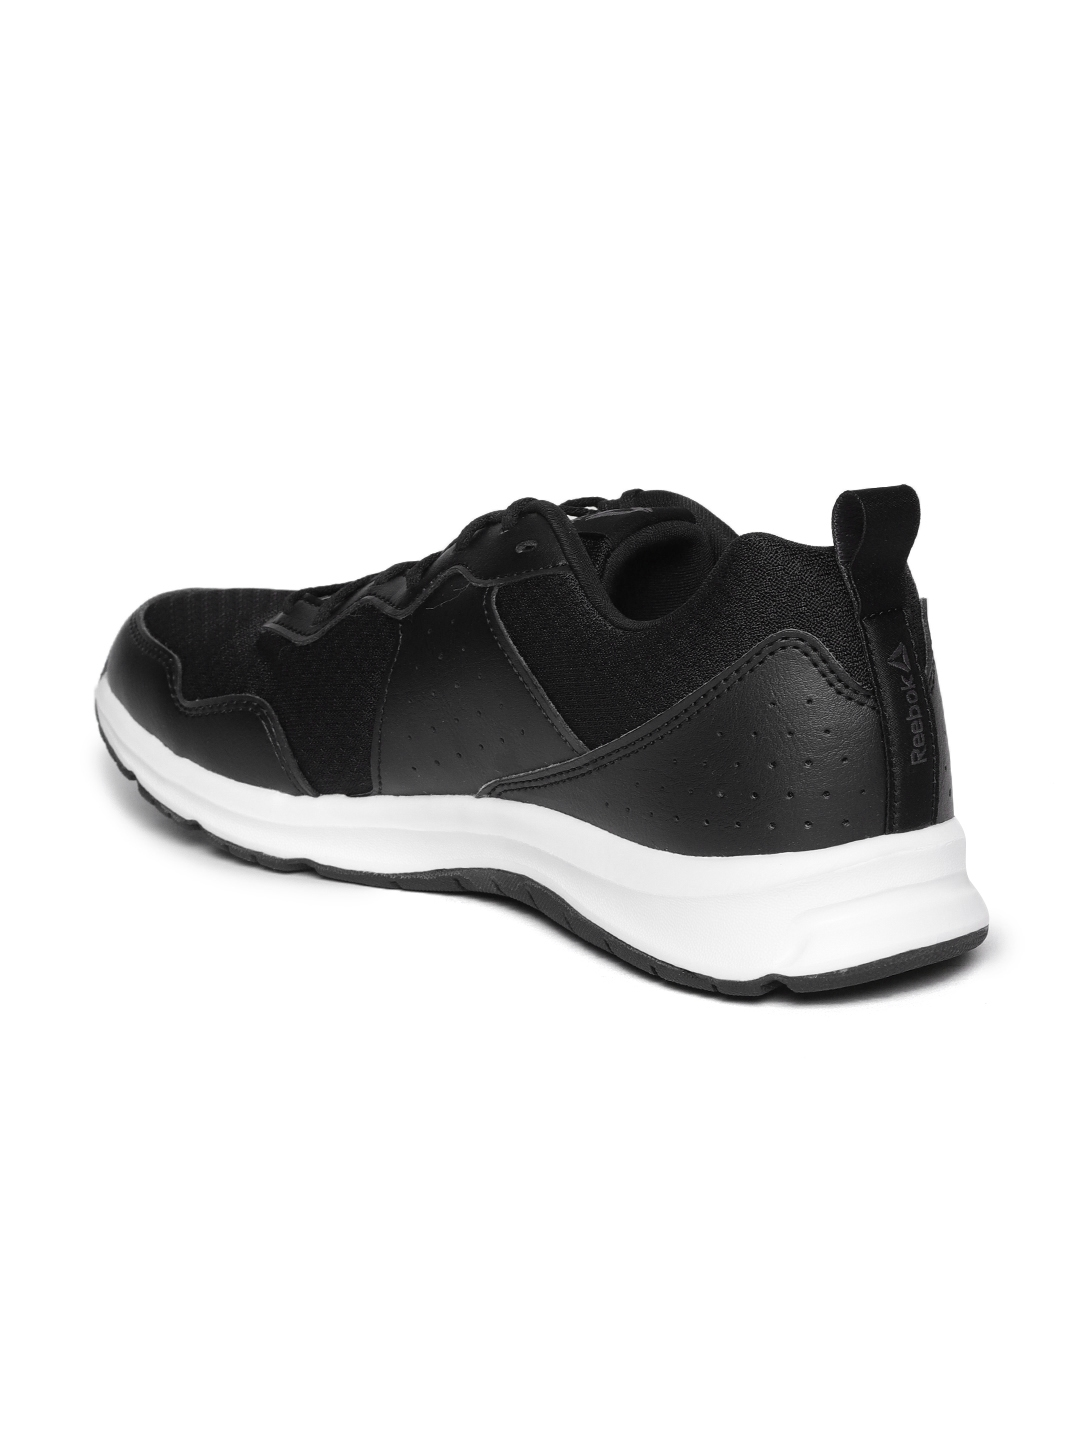 Buy Reebok Men Black Express Runner 2.0 Running Shoes - Sports Shoes ... c5921ab2b